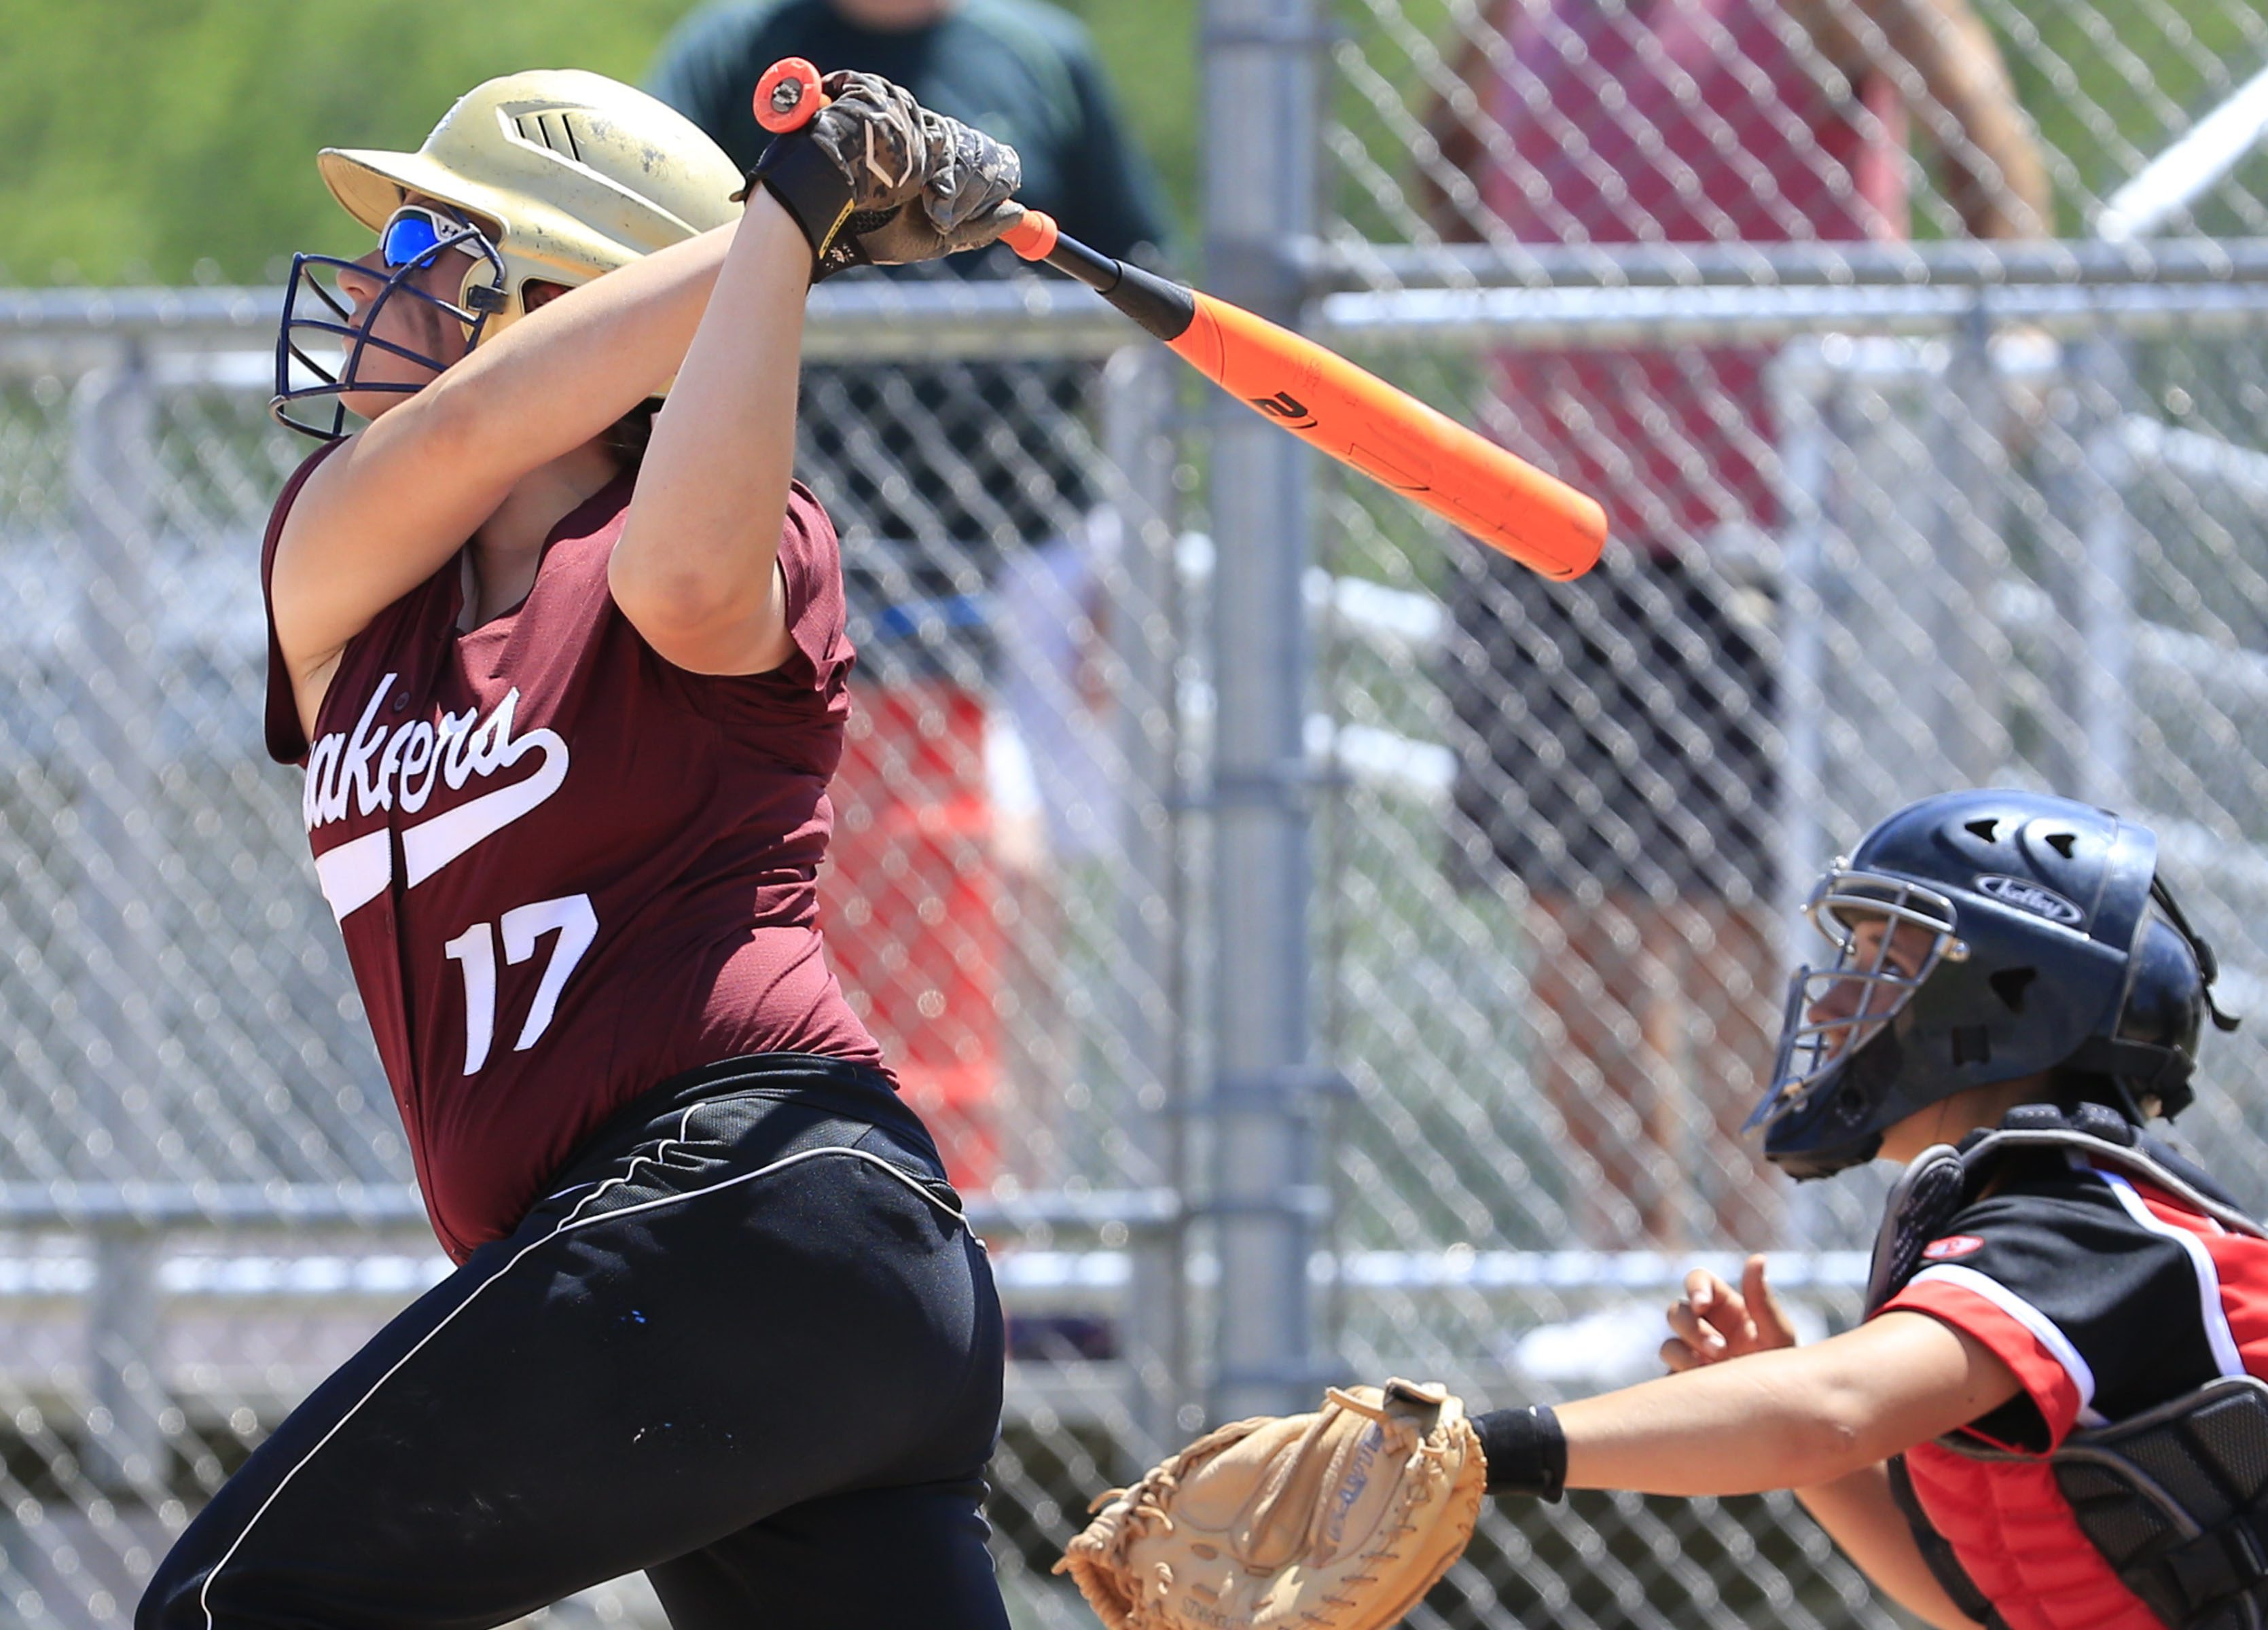 State Class AA player of the year Katie Weimer helped Orchard Park softball make history as the first girls team to win a state title. (Harry Scull Jr./Buffalo News)